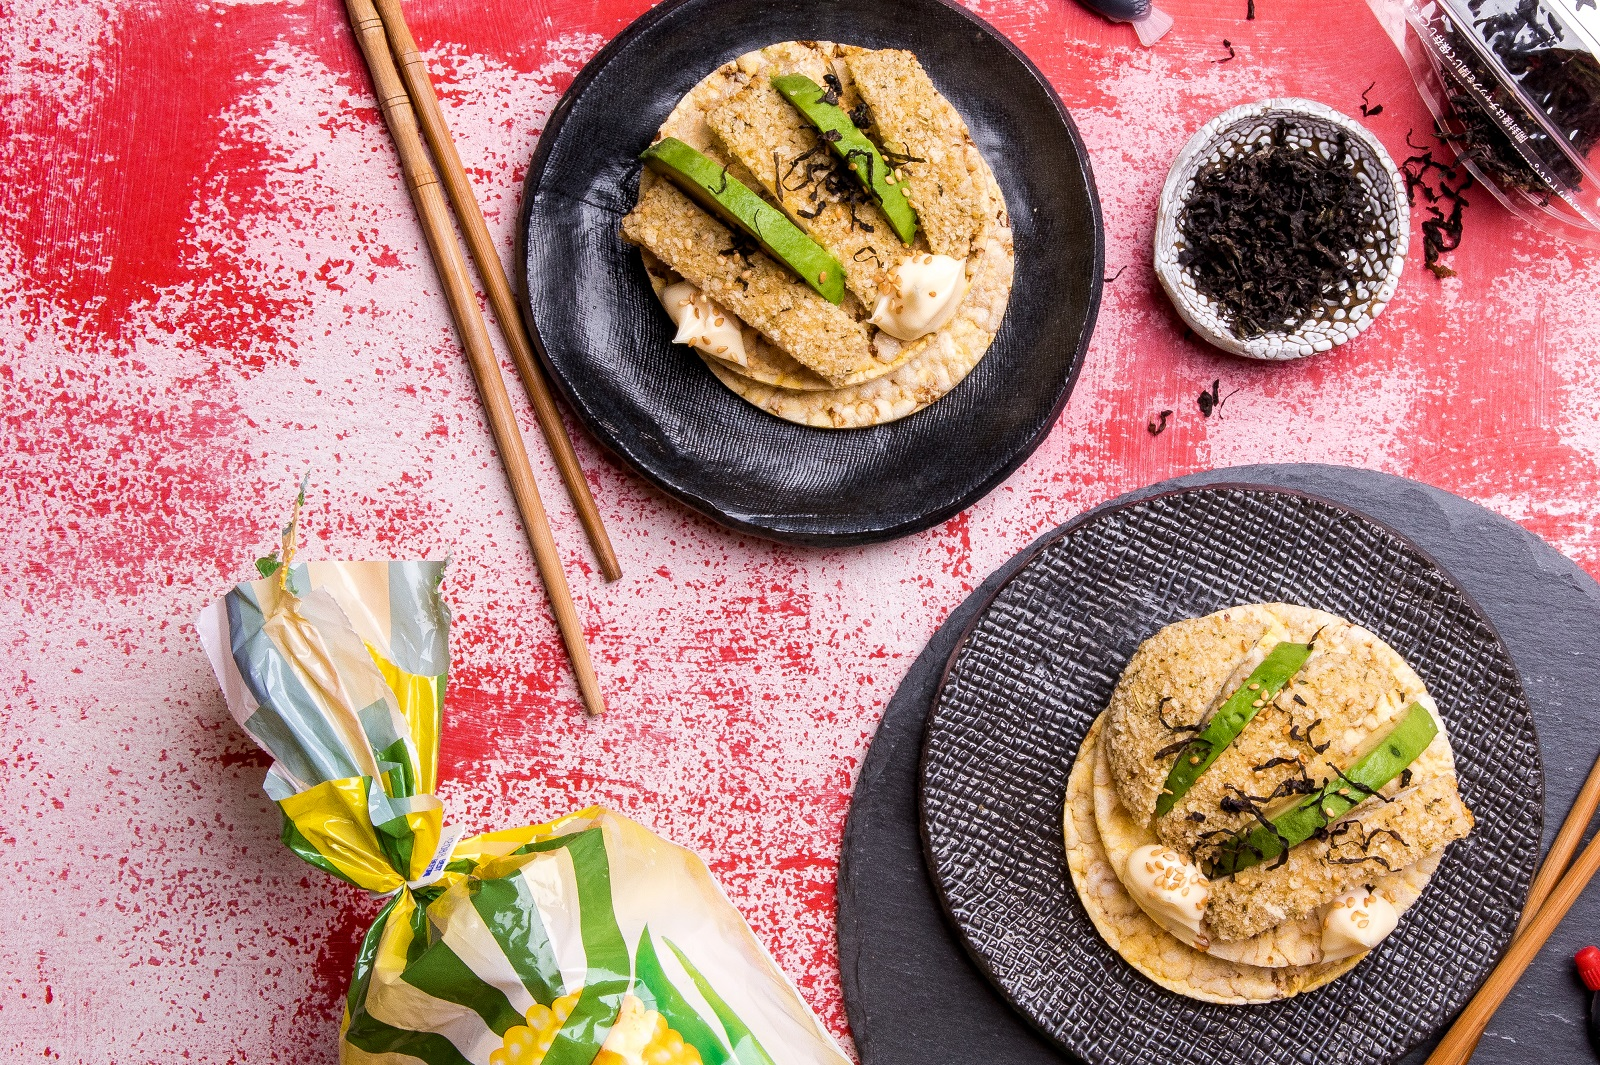 Lunch Recipe of CORN THINS slices with Chicken Schnitzel, Avo, Kewpie Mayo & Seaweed Flakes